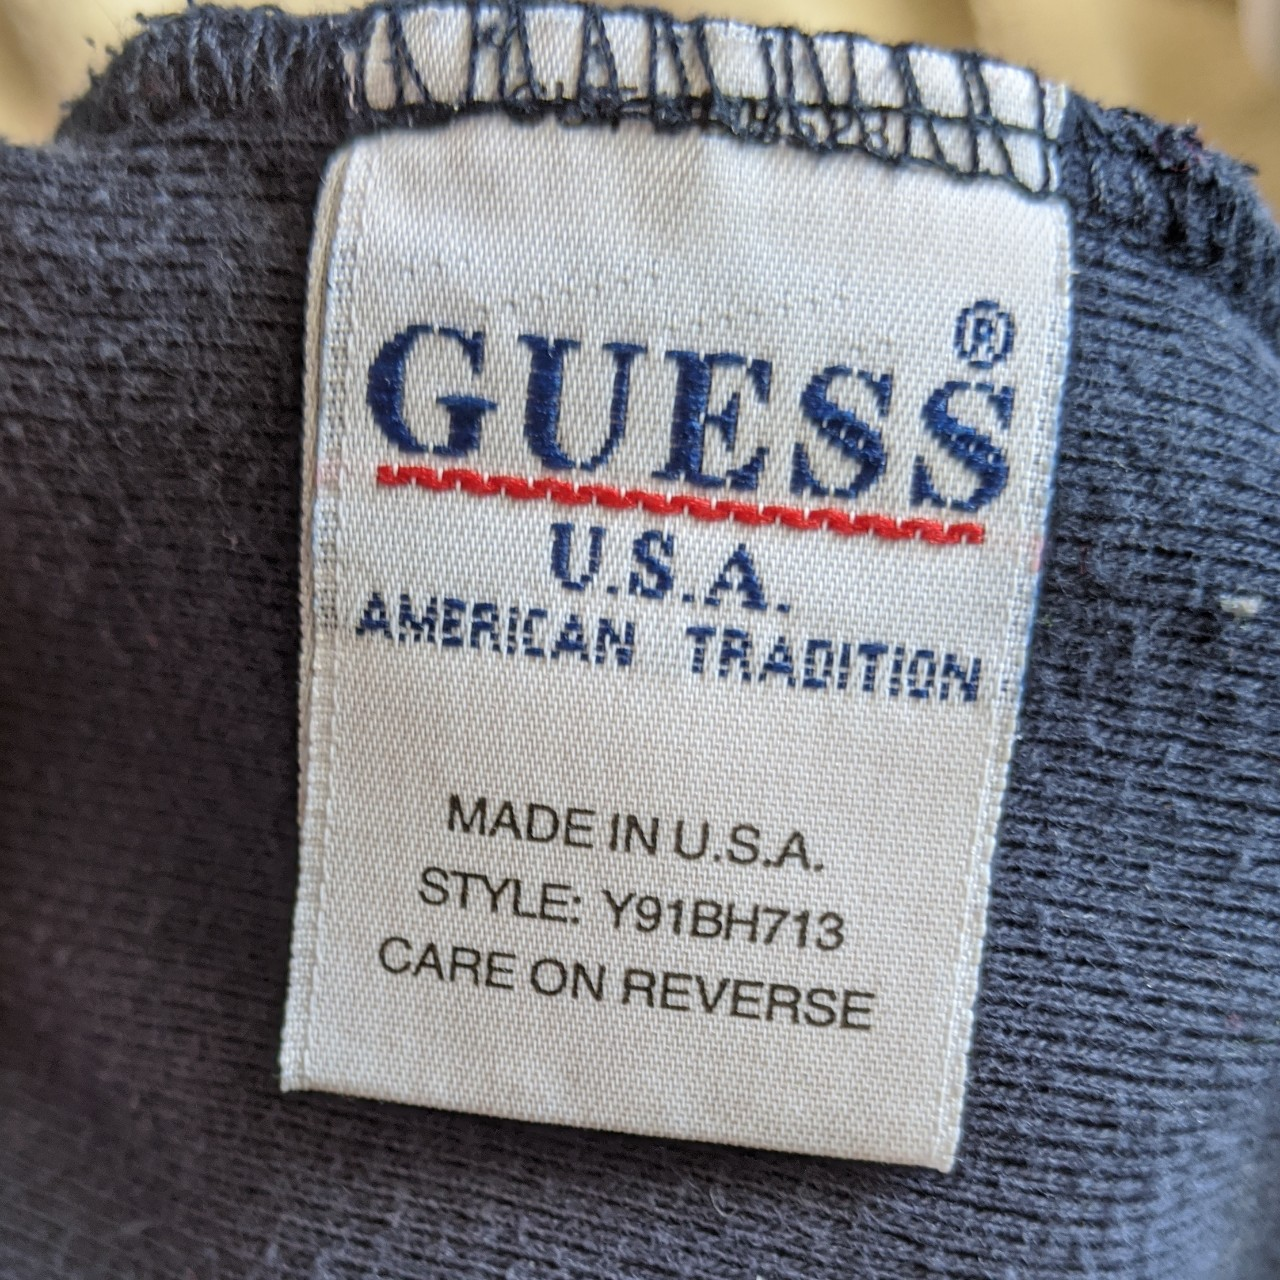 RARE VINTAGE GUESS JEANS USA Navy blue dress